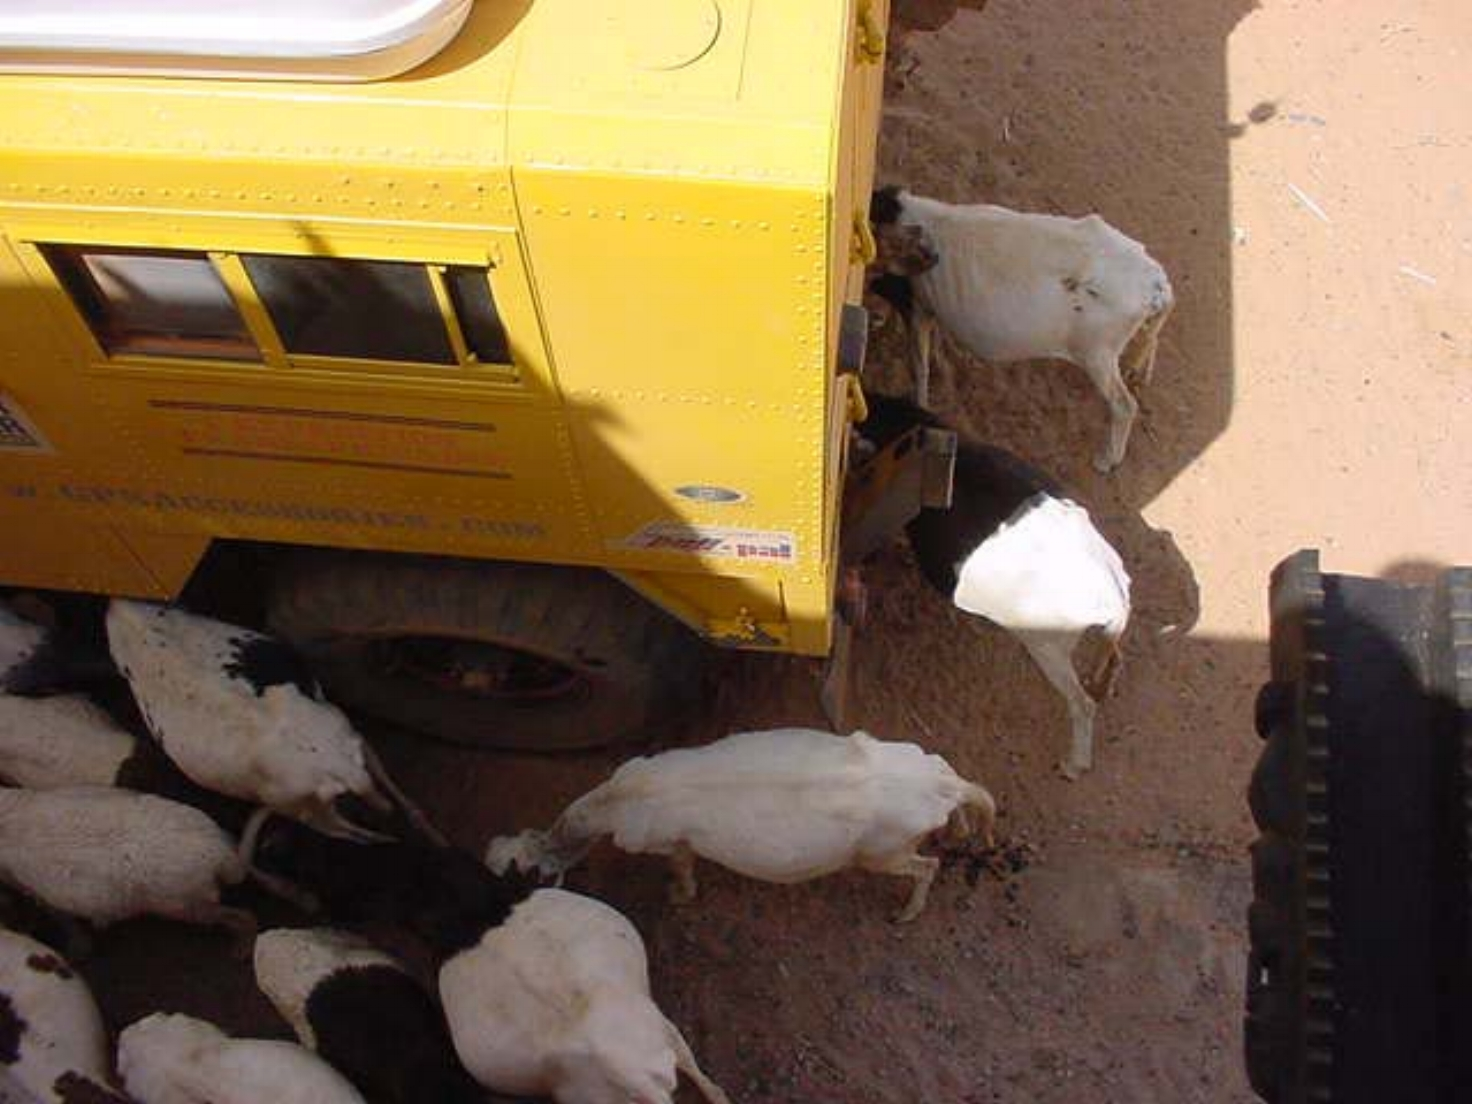 The Dogon animals sure seem to like our Land Rover Forward Control